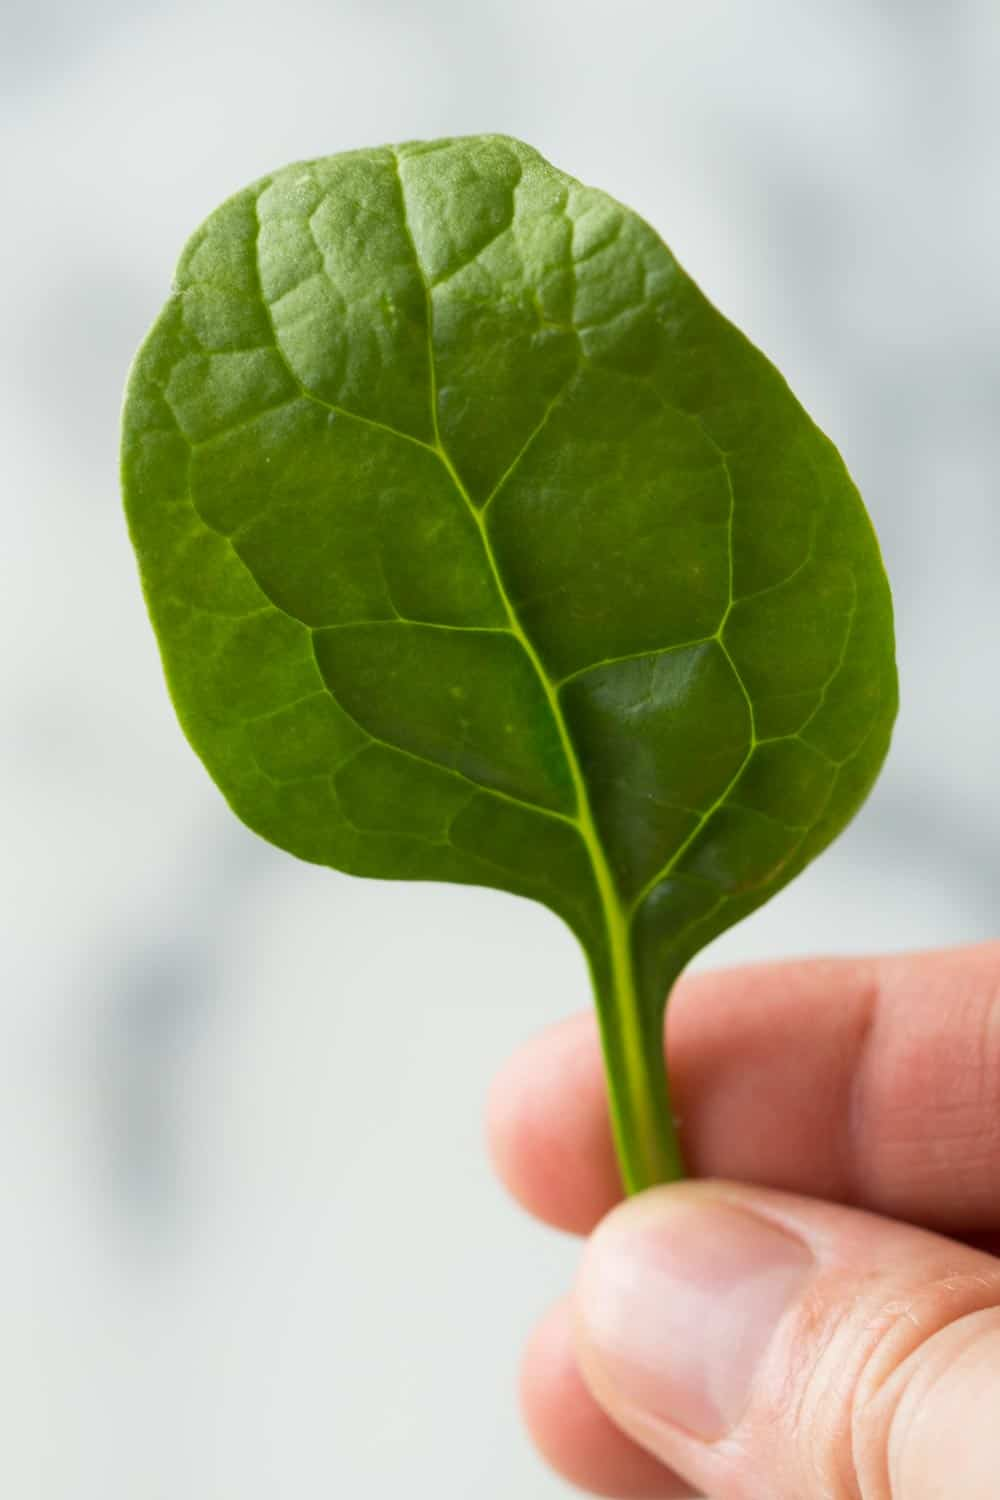 Close up of a hand holding a single baby spinach leaf.